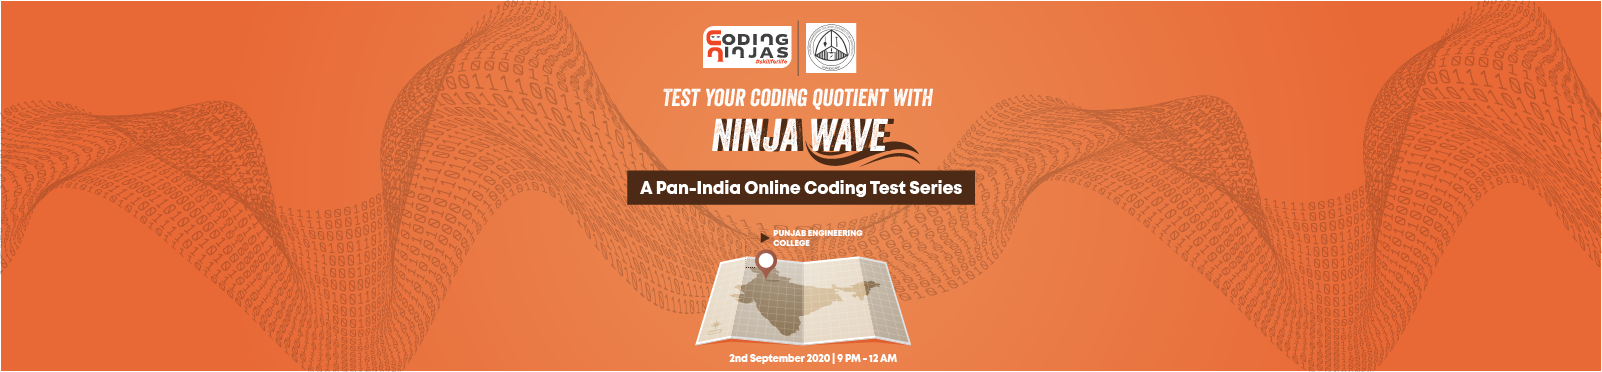 Ninja Wave at Punjab Engineering College